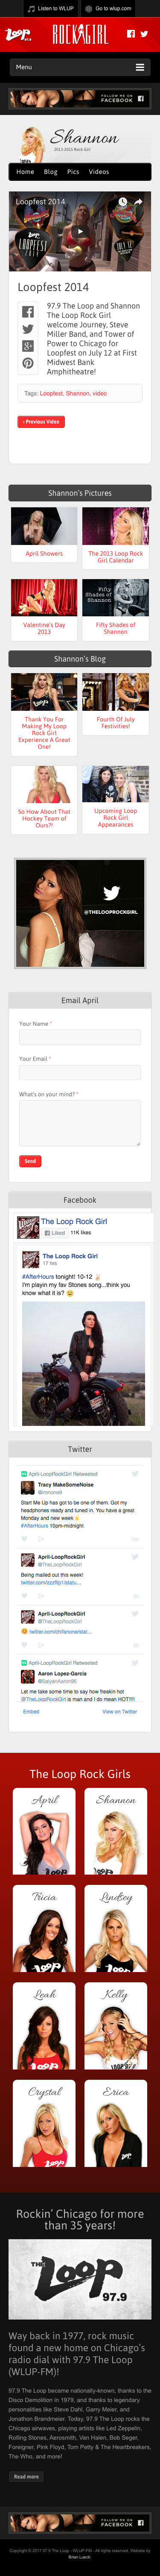 The Loop Rock Girl - Sample Video Post - iPhone View